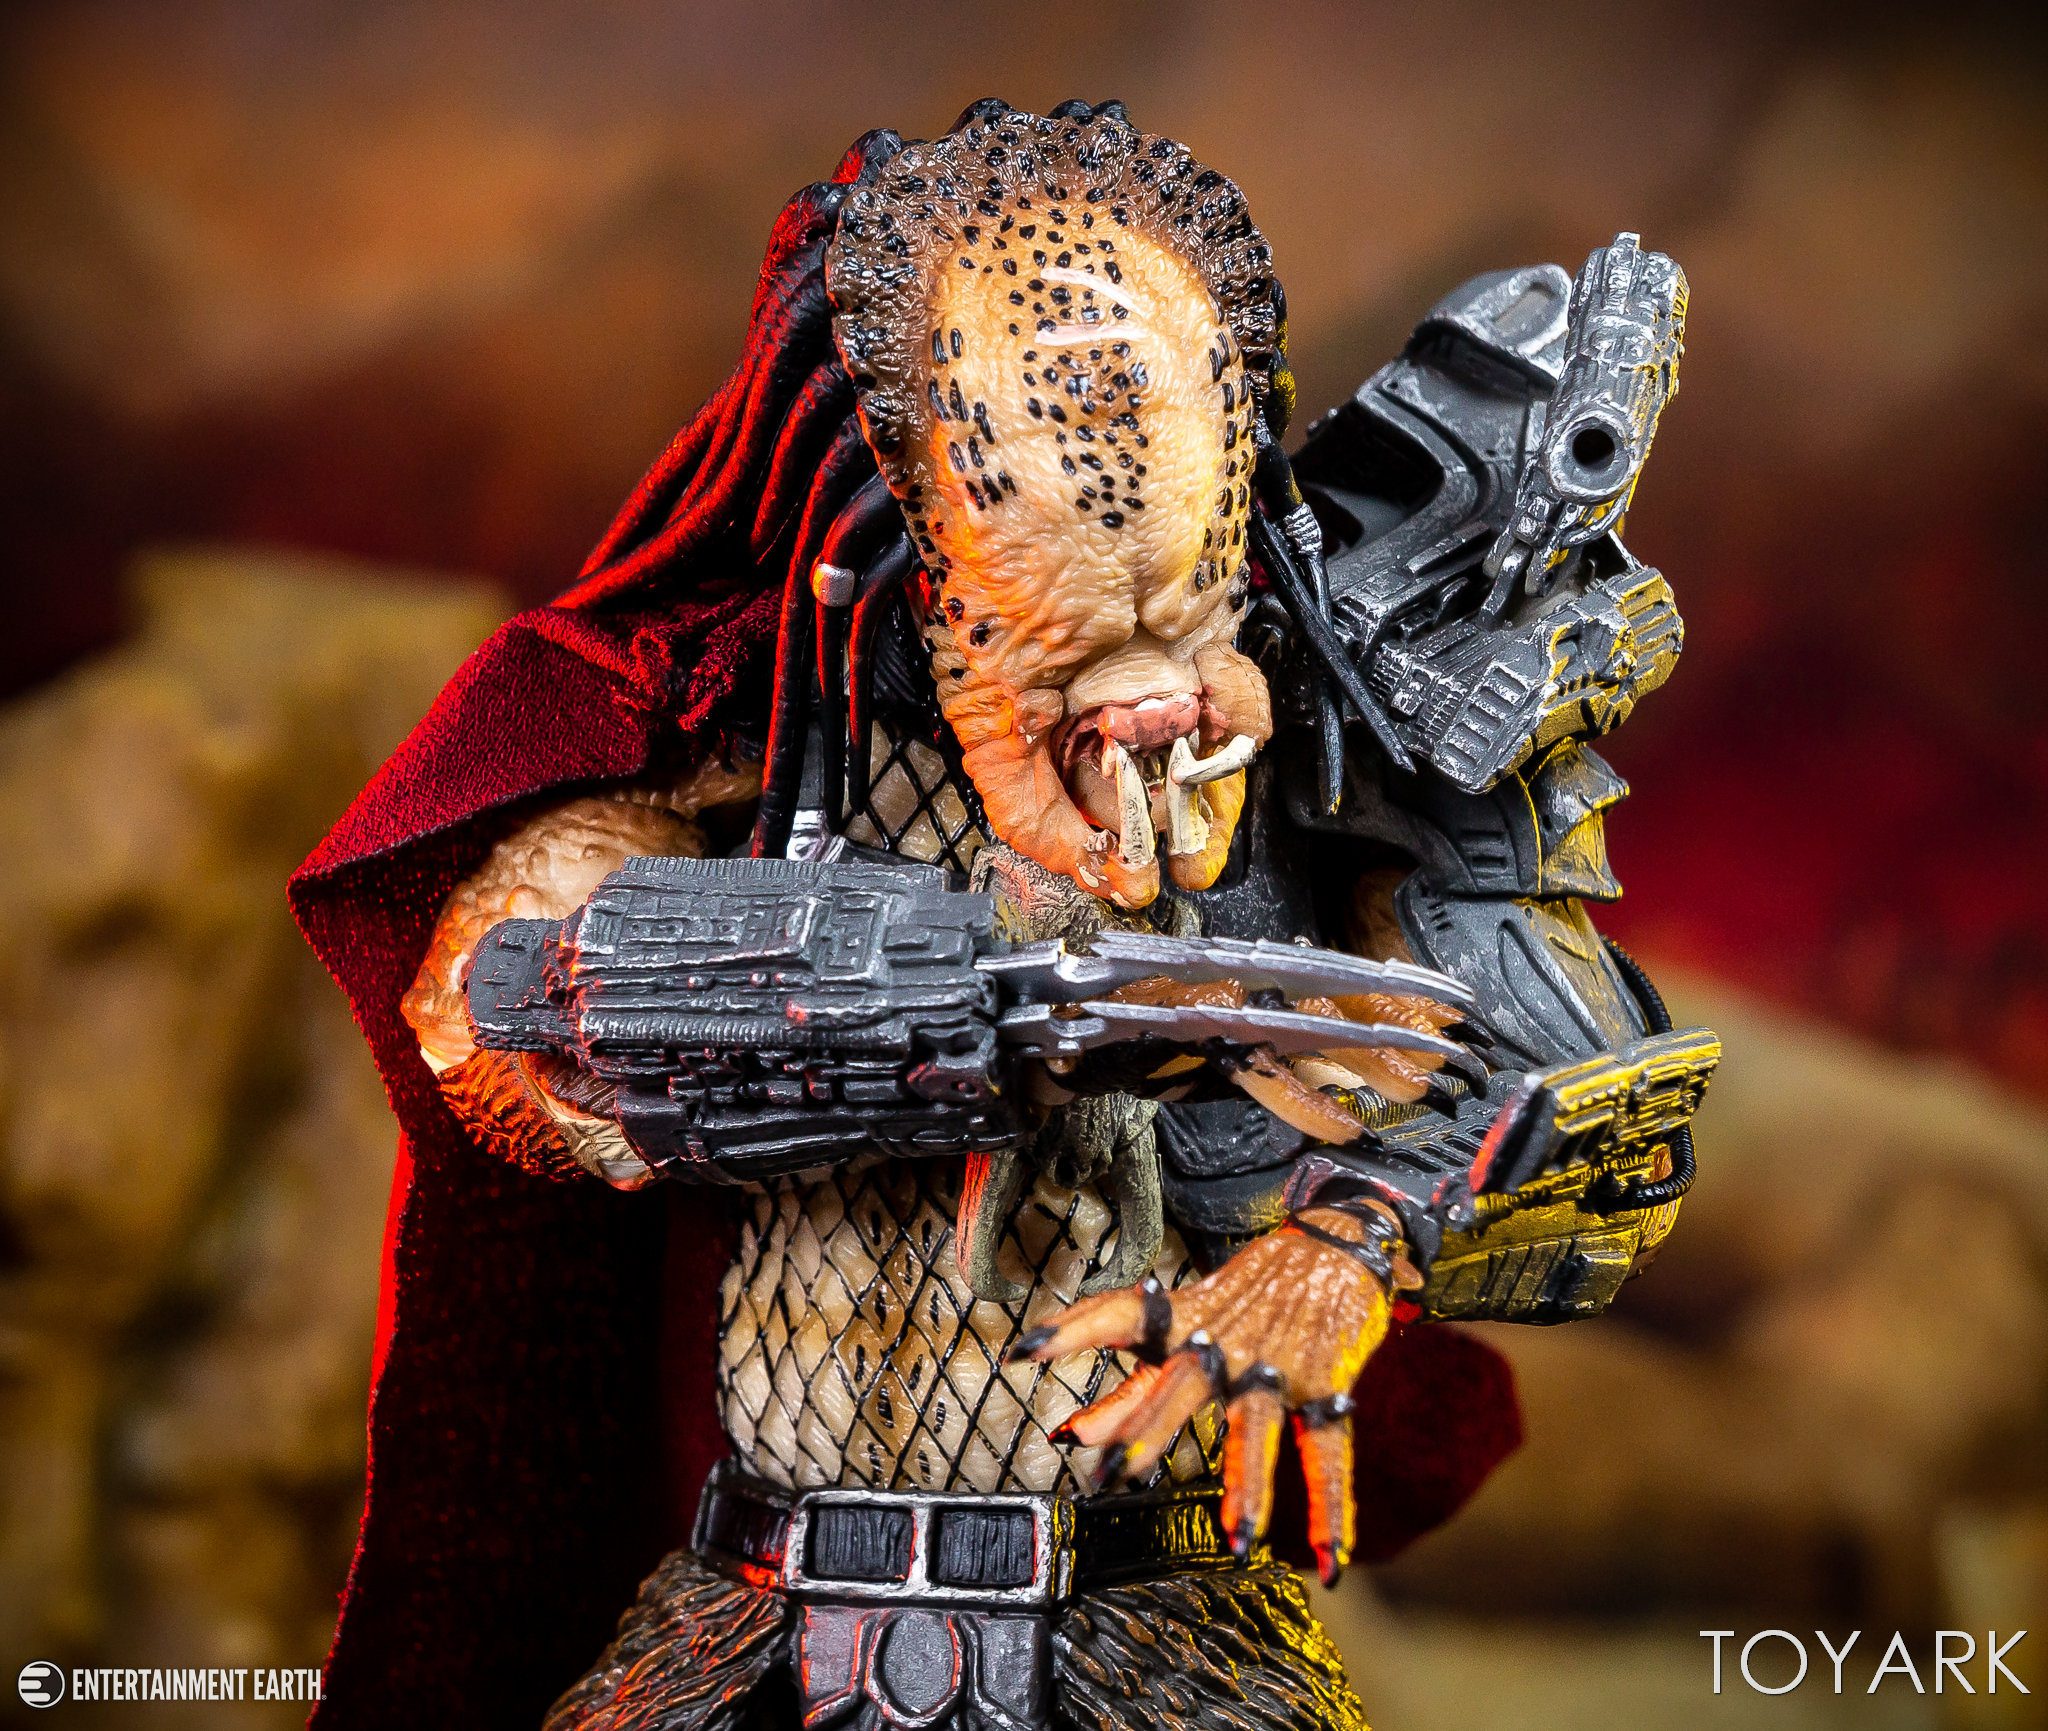 https://news.toyark.com/wp-content/uploads/sites/4/2018/11/NECA-Ultimate-Ahab-Predator-033.jpg